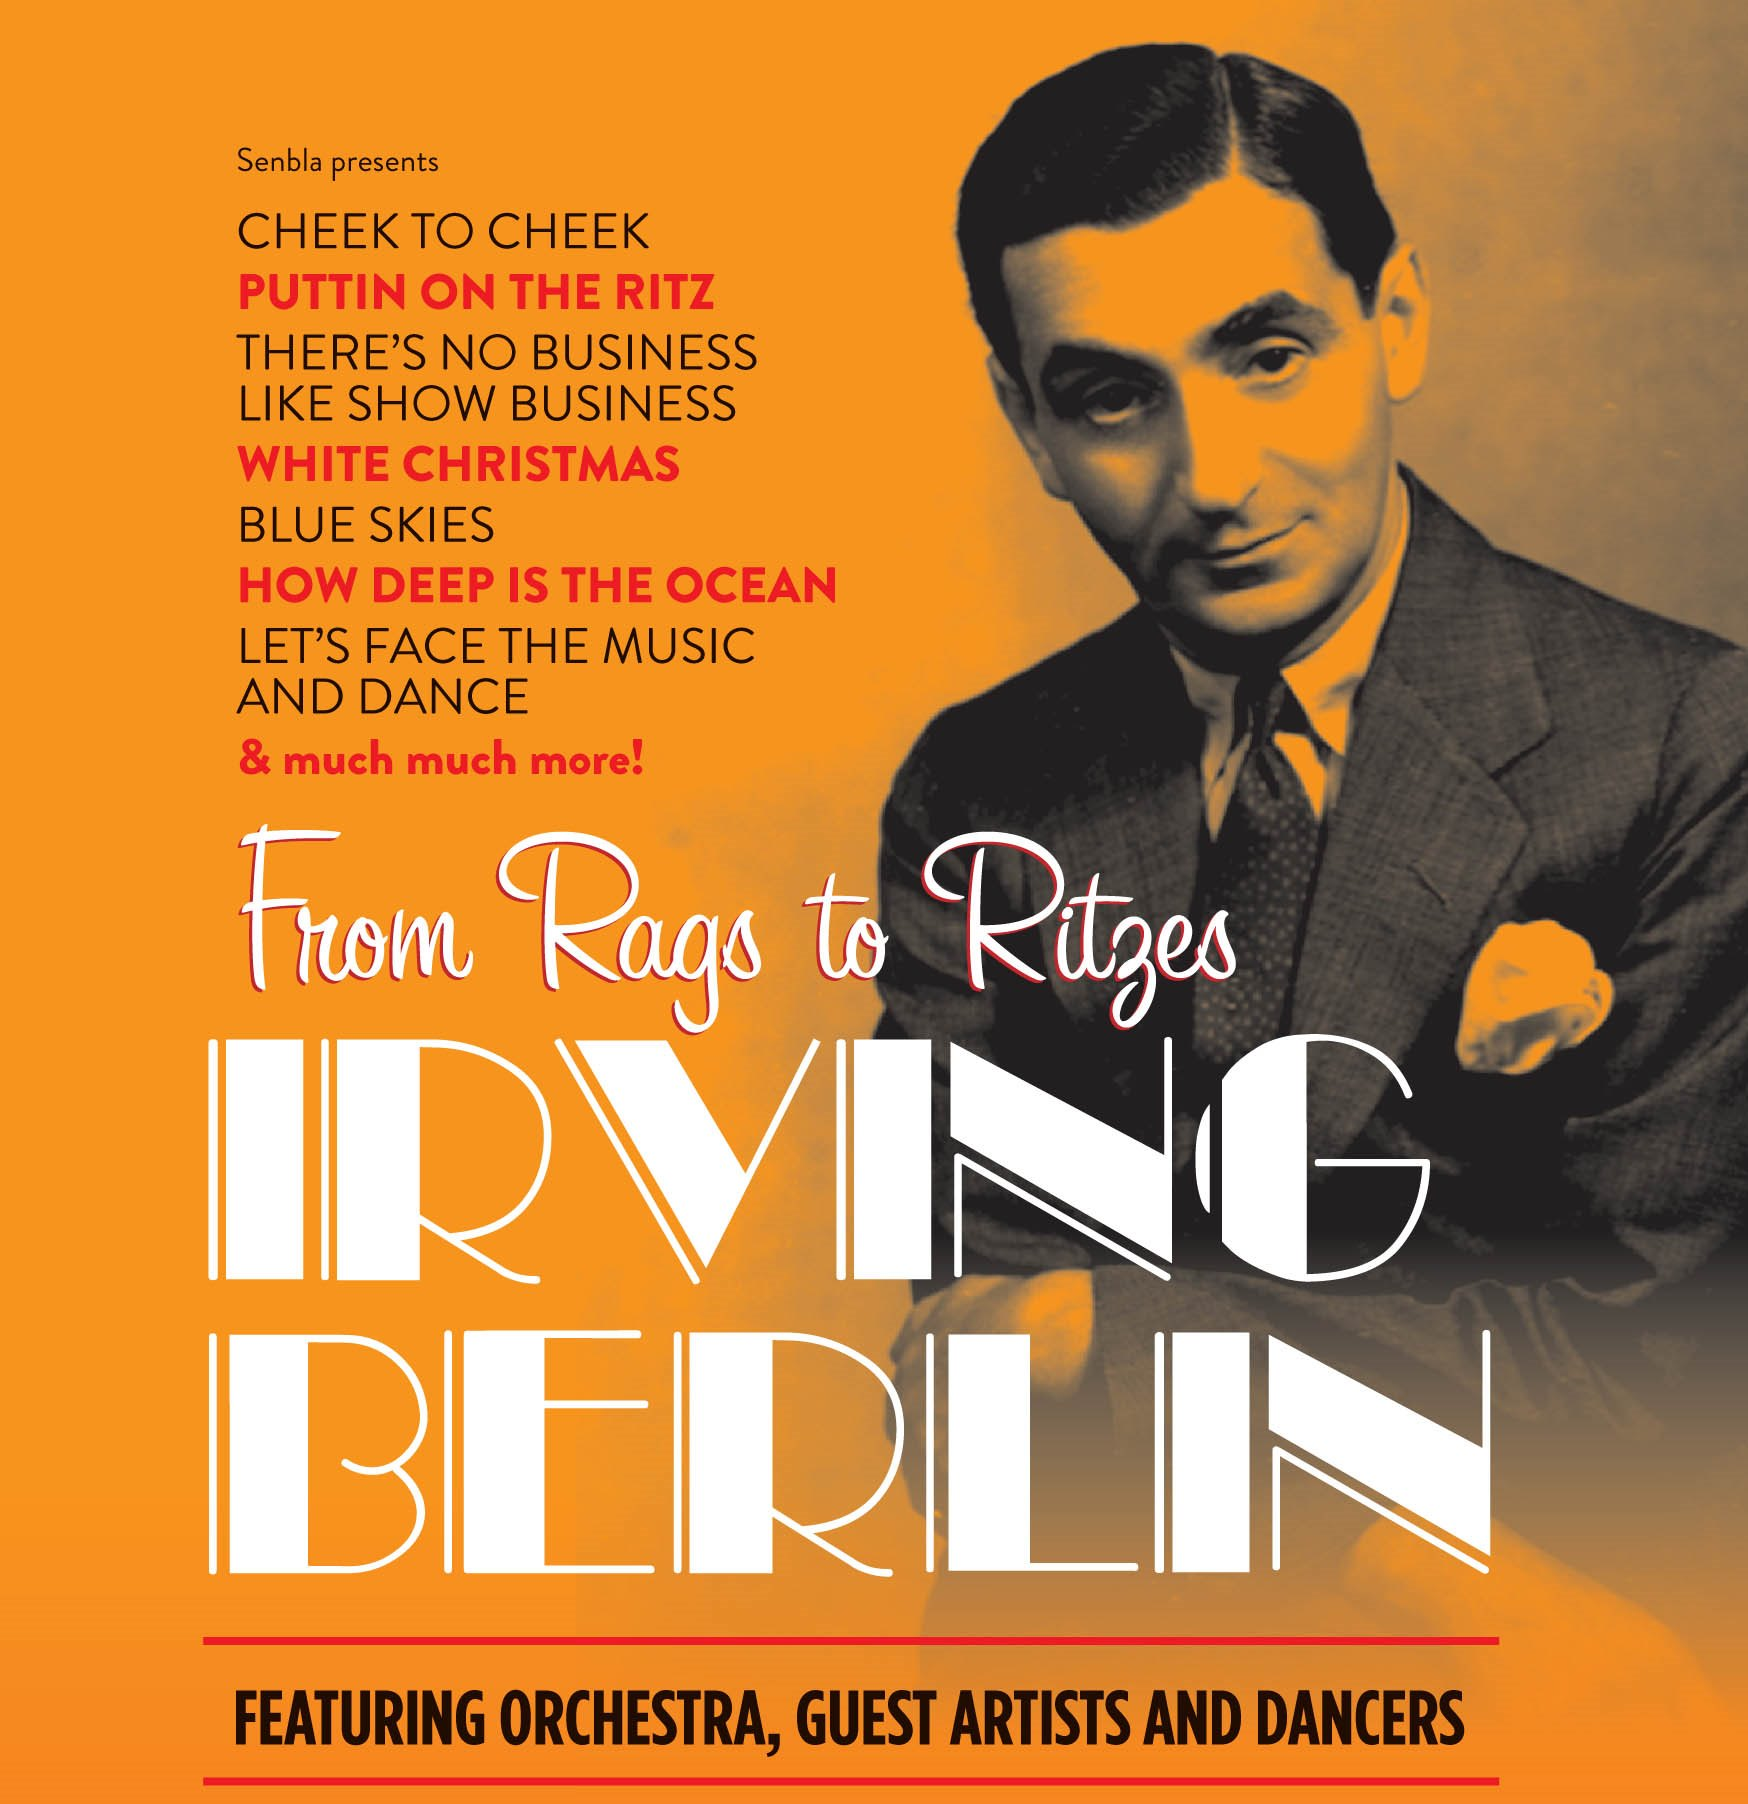 Irving Berlin - From Rags to Ritzes :: Rodgers & Hammerstein :: News